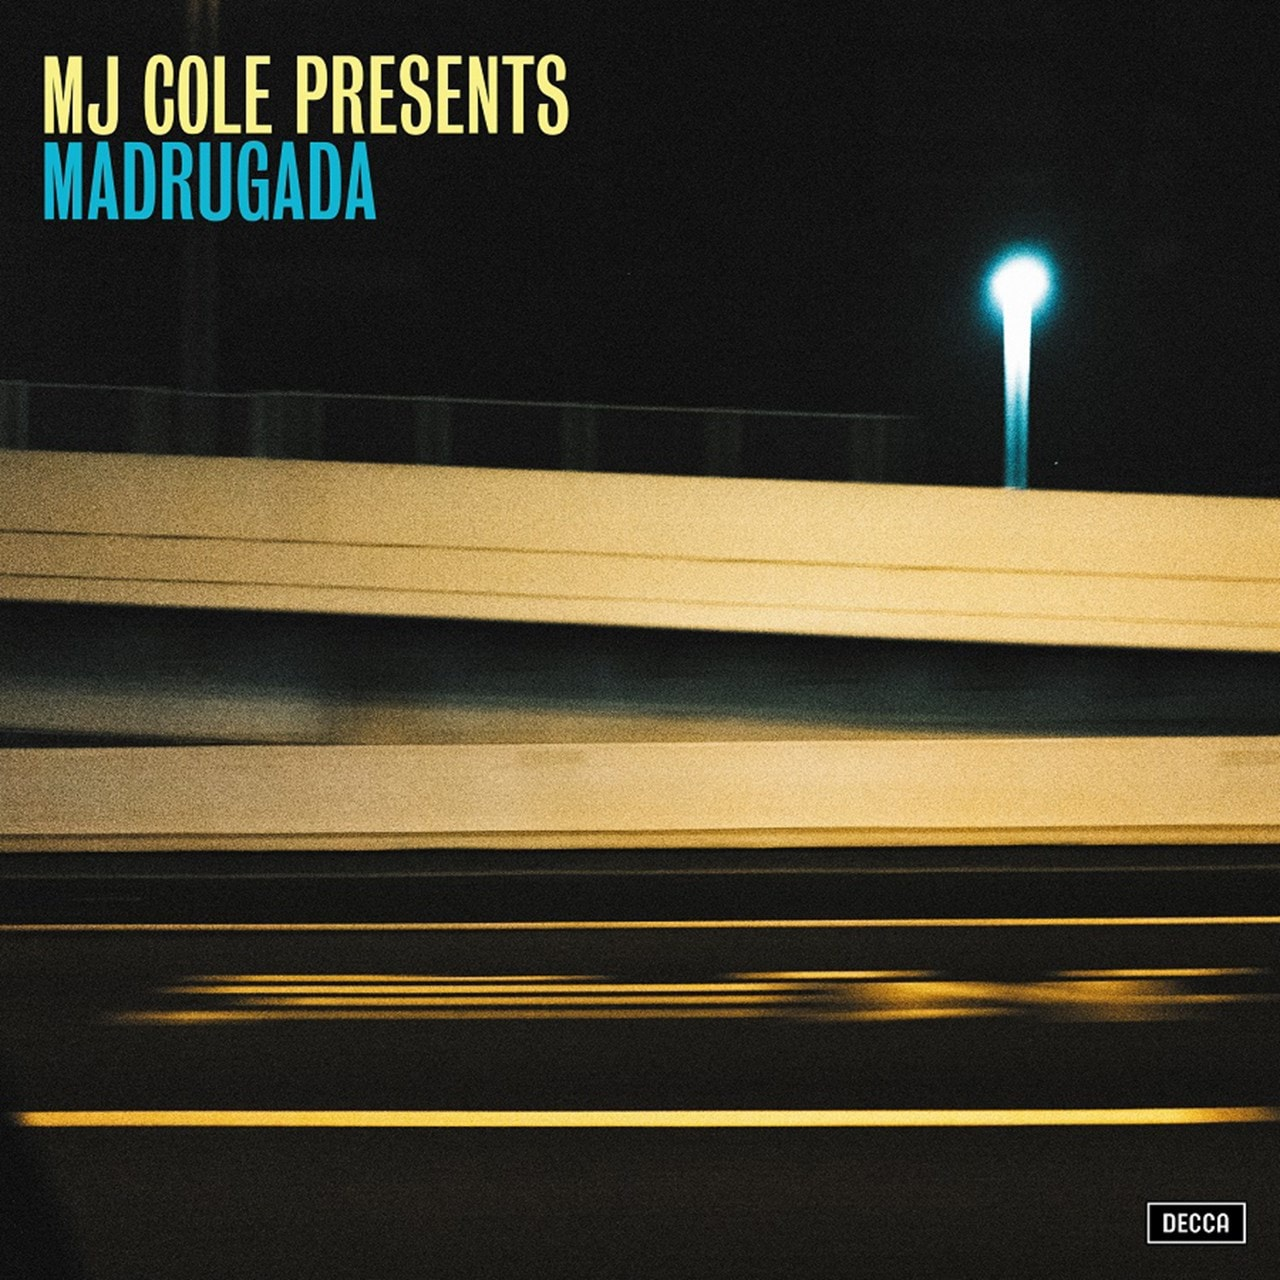 MJ Cole Presents Madrugada - 1